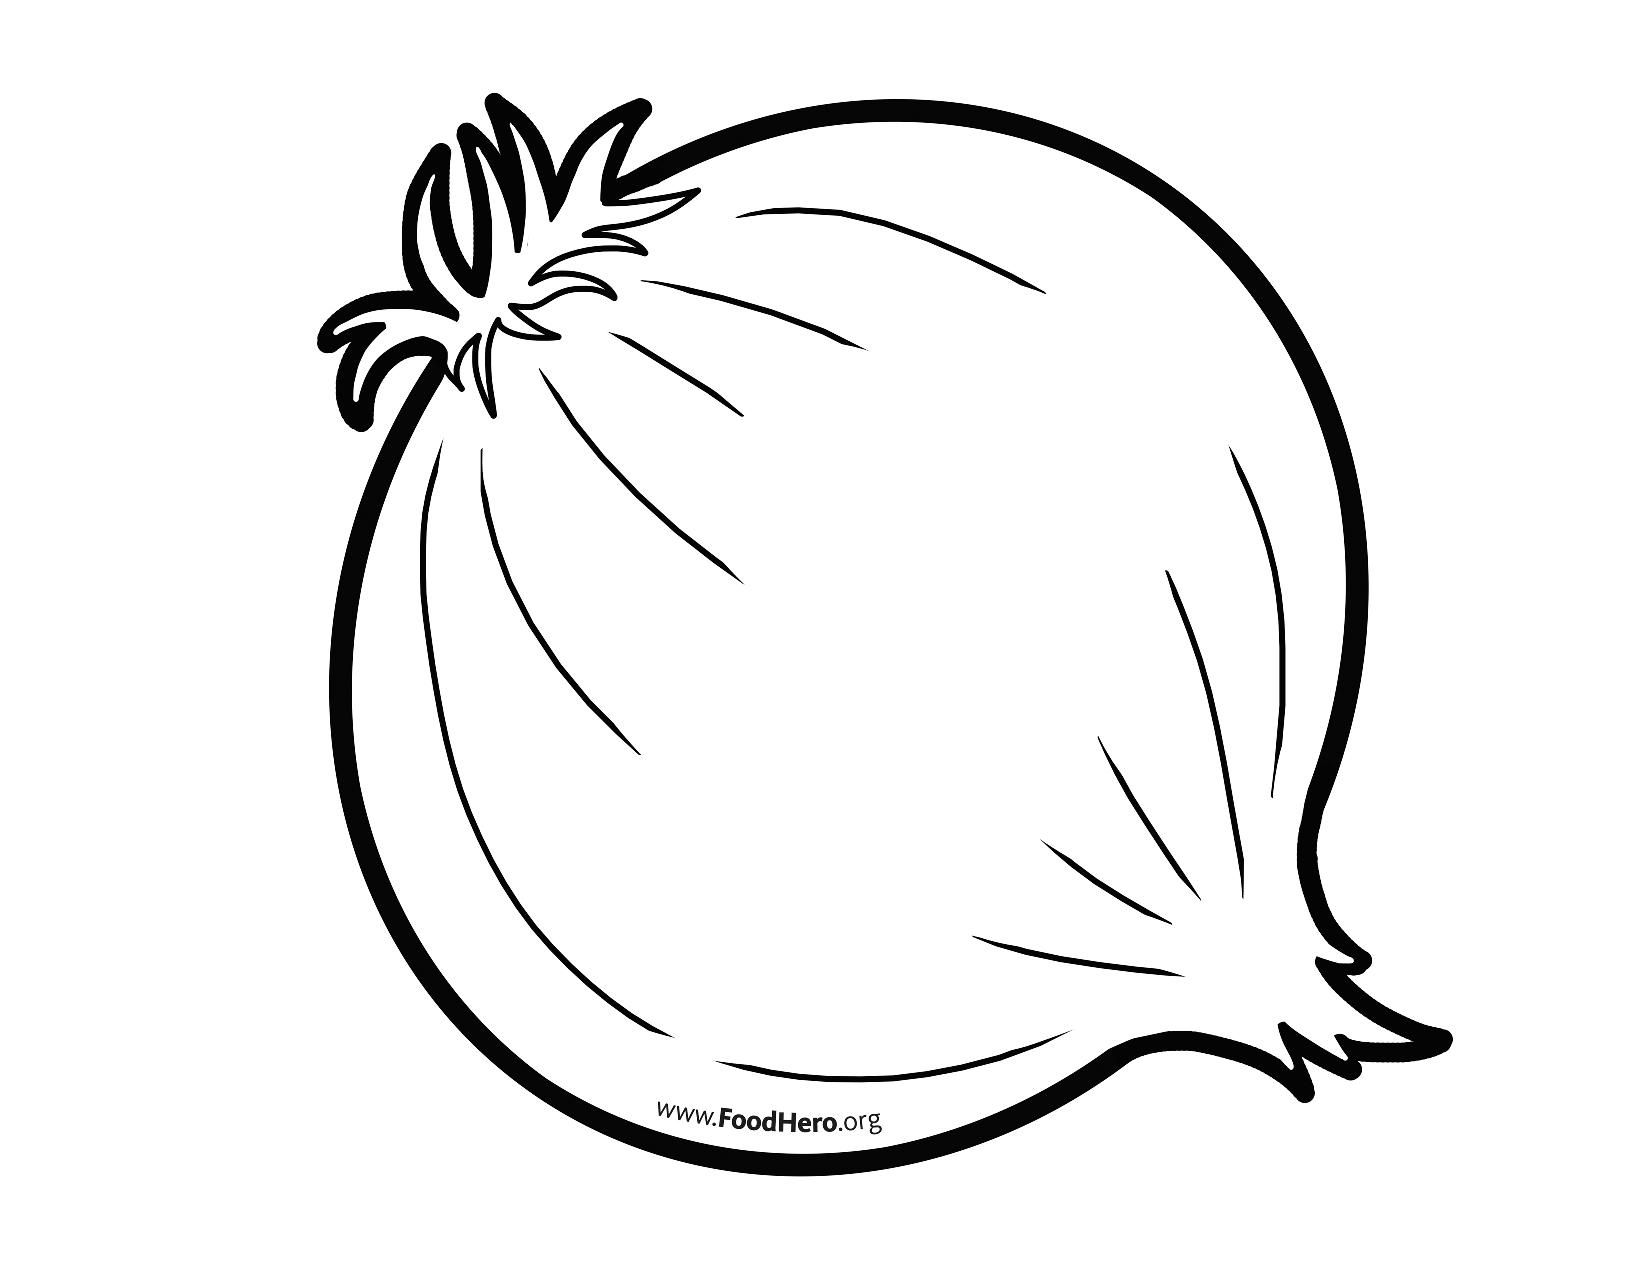 Onion Outline From Foodhero Org Art Drawings For Kids Vegetable